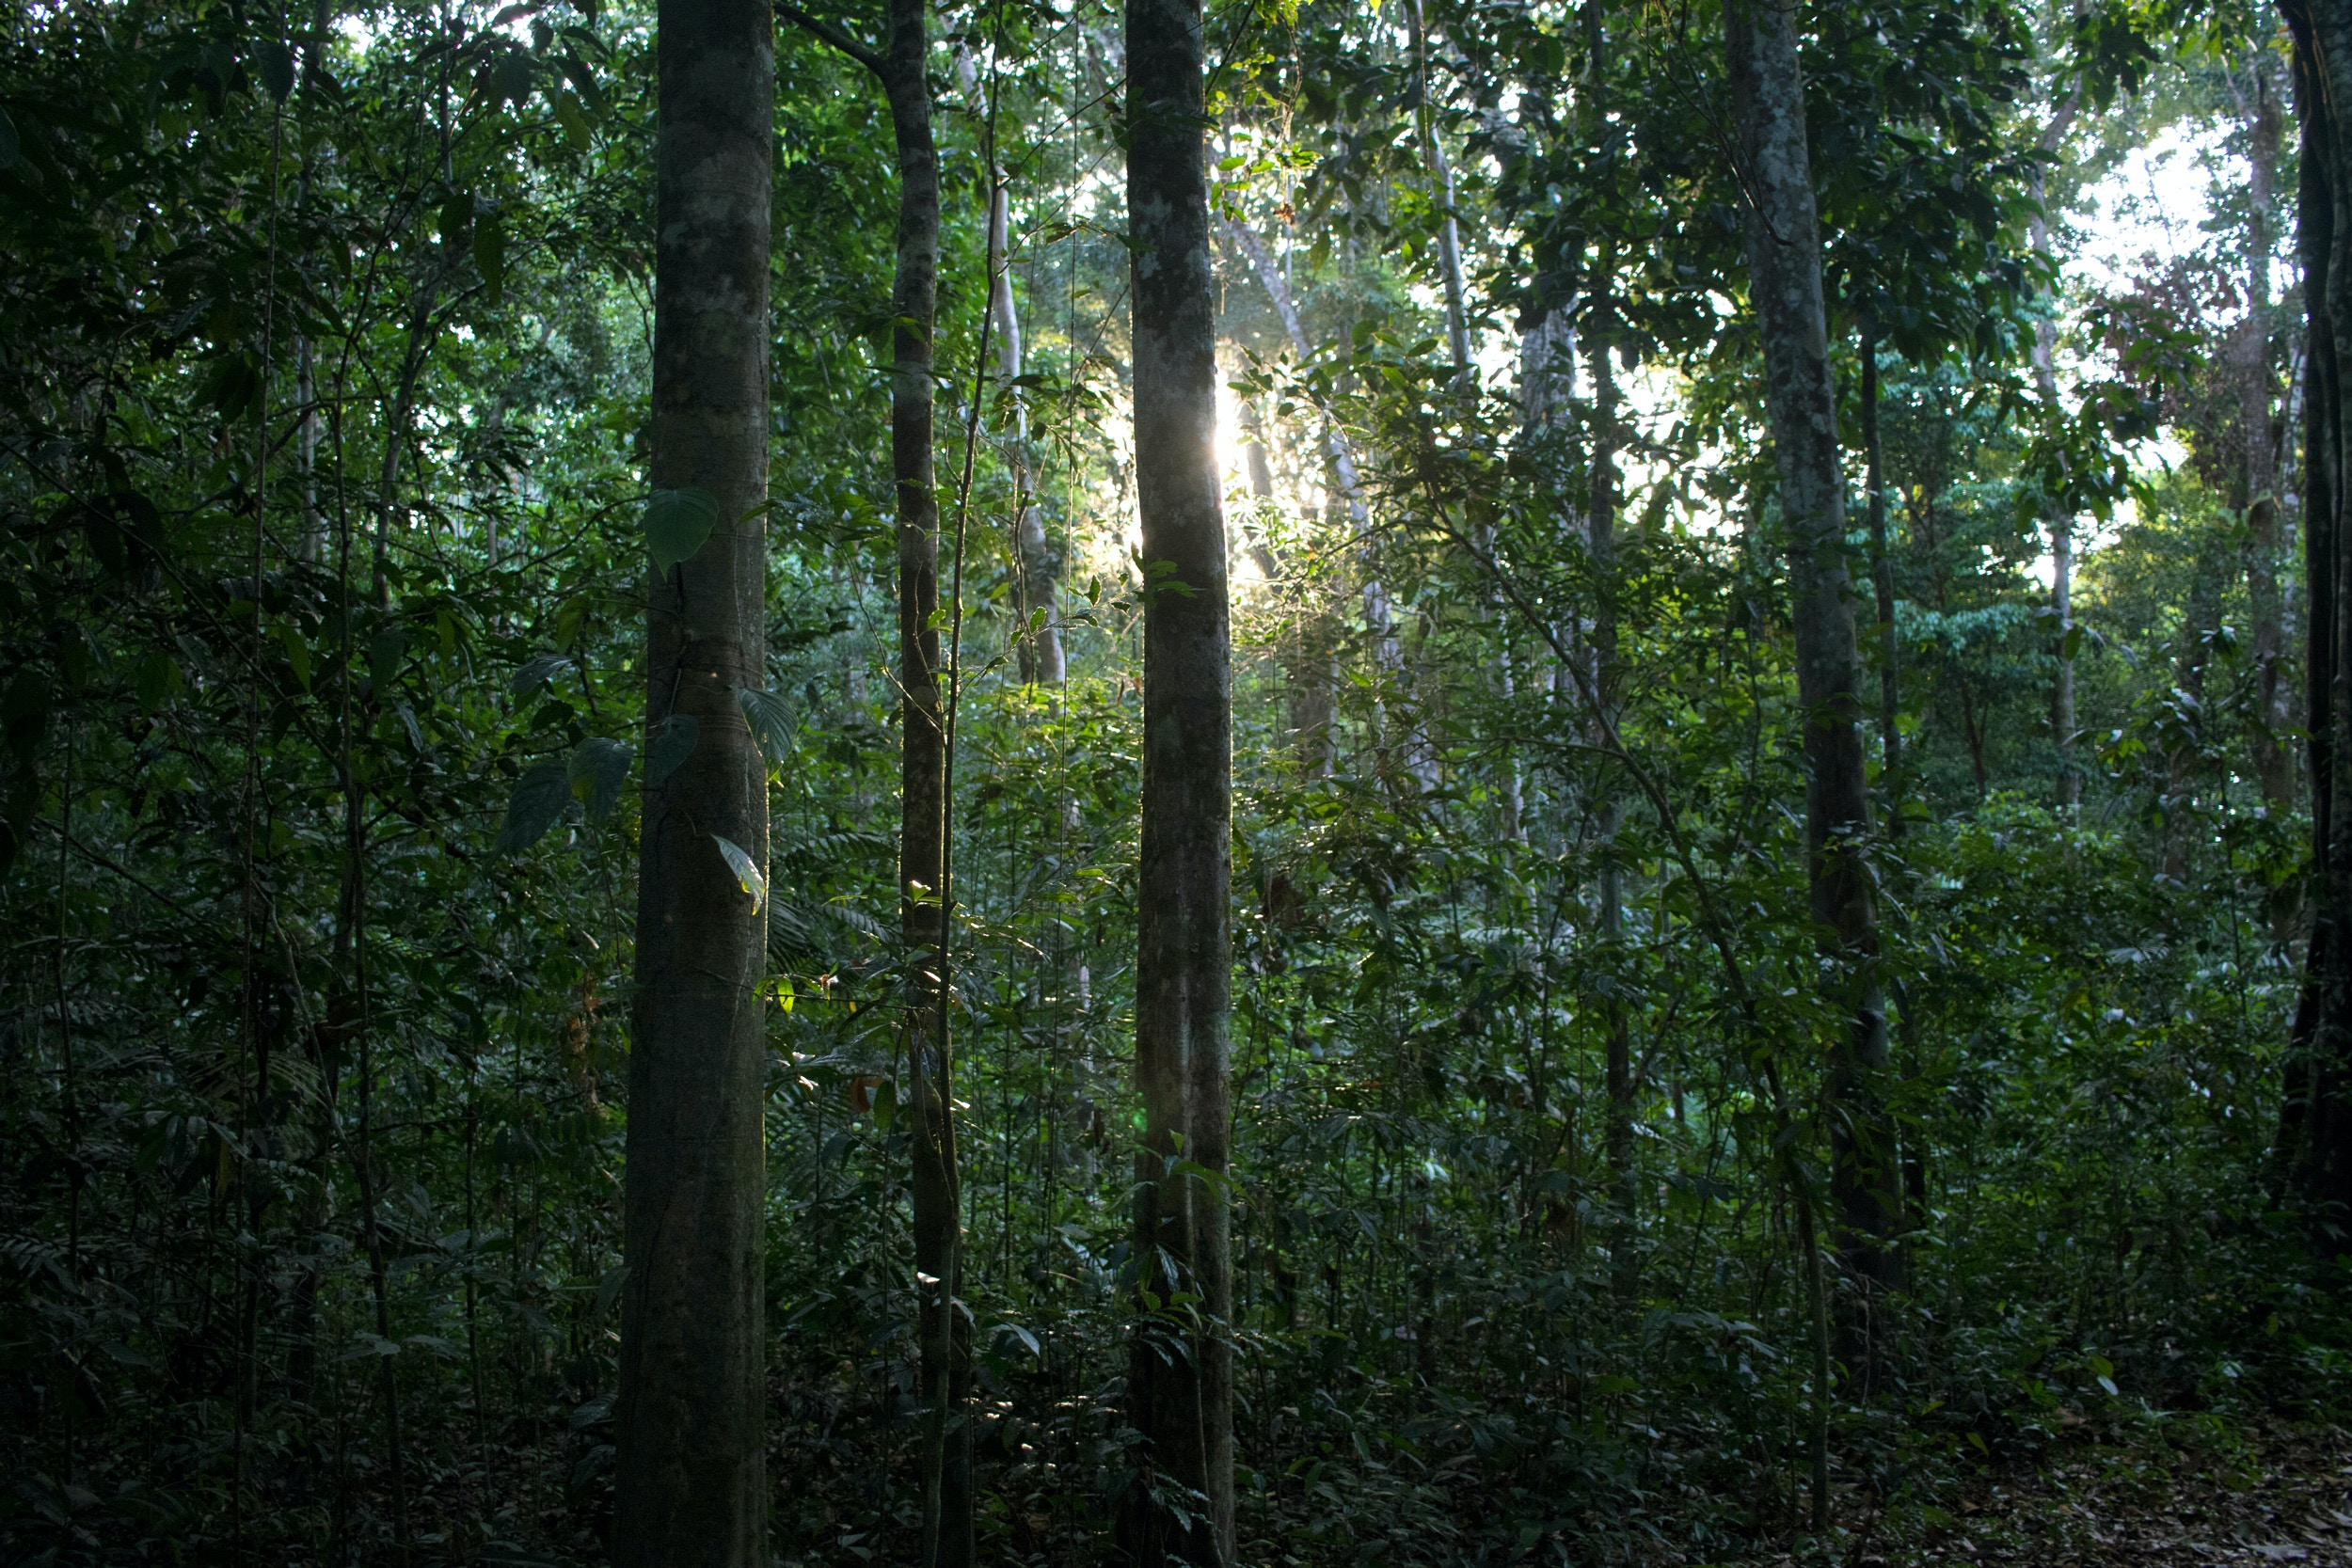 rainforest-02-1562186876-1562361747